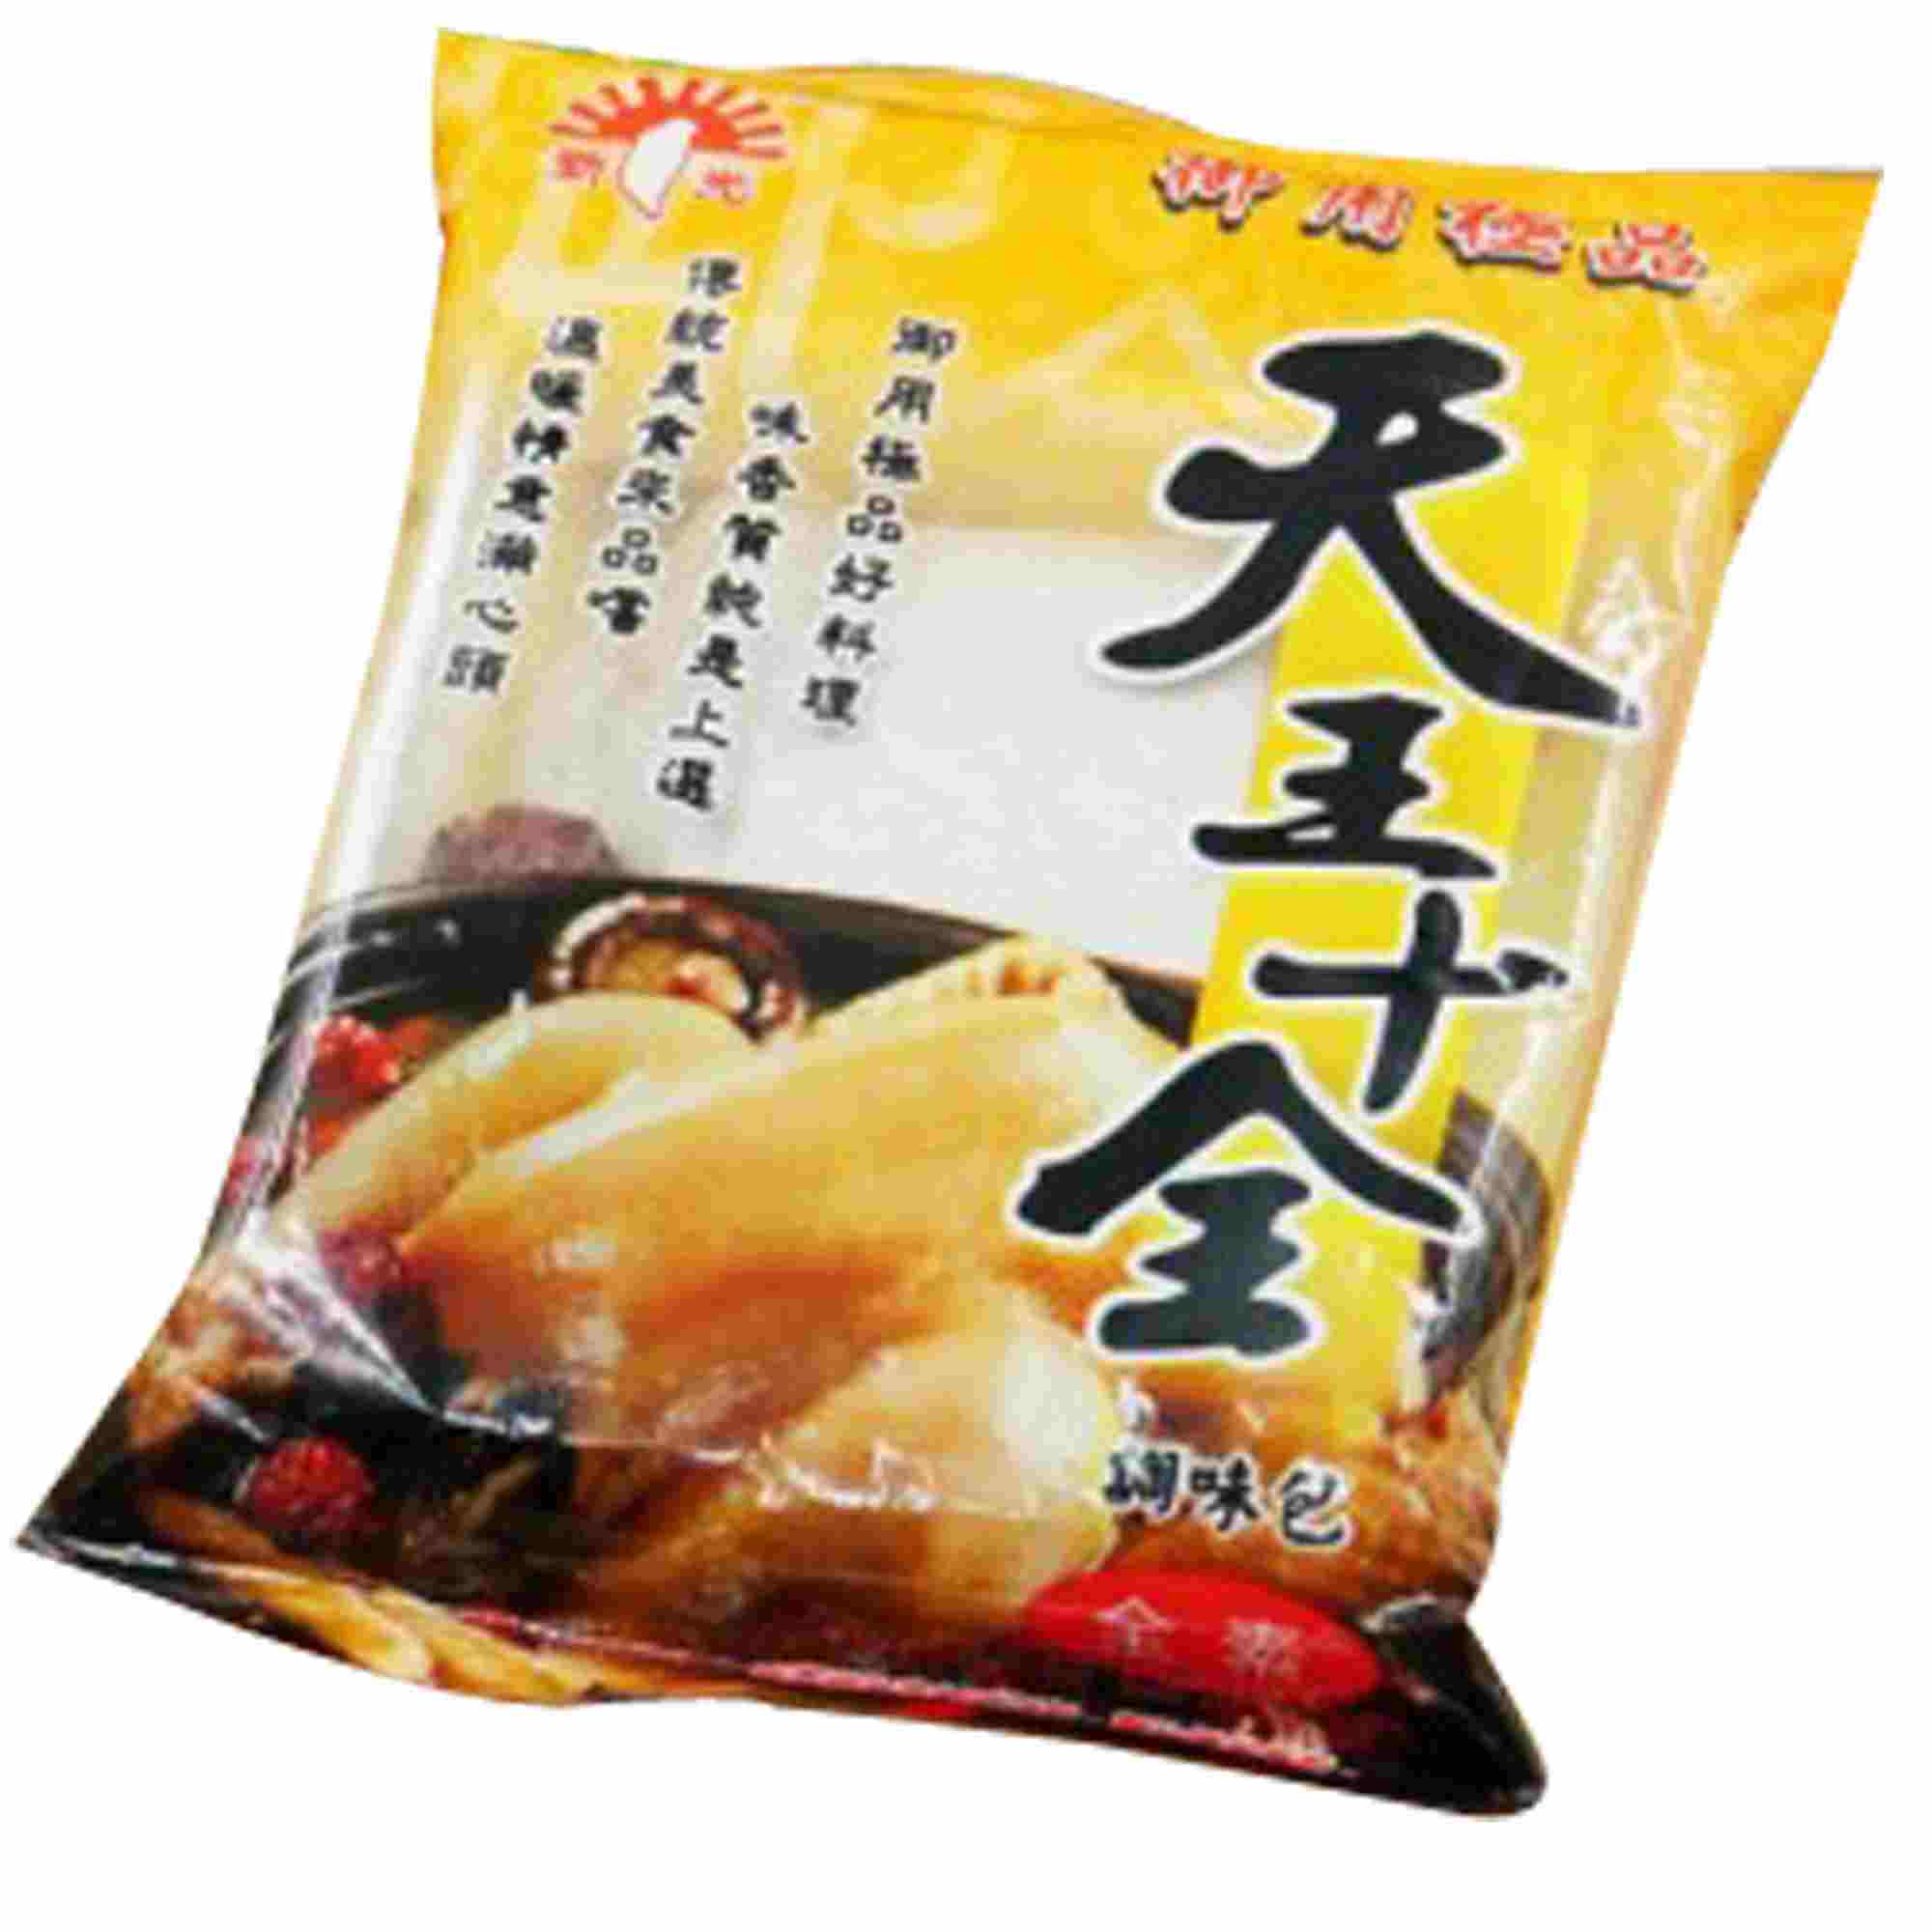 Image hsin kuang Herbal Heavenly Kings perfect herbal soup Tian Wang Shi Quan 新光 - 天王十全 60grams